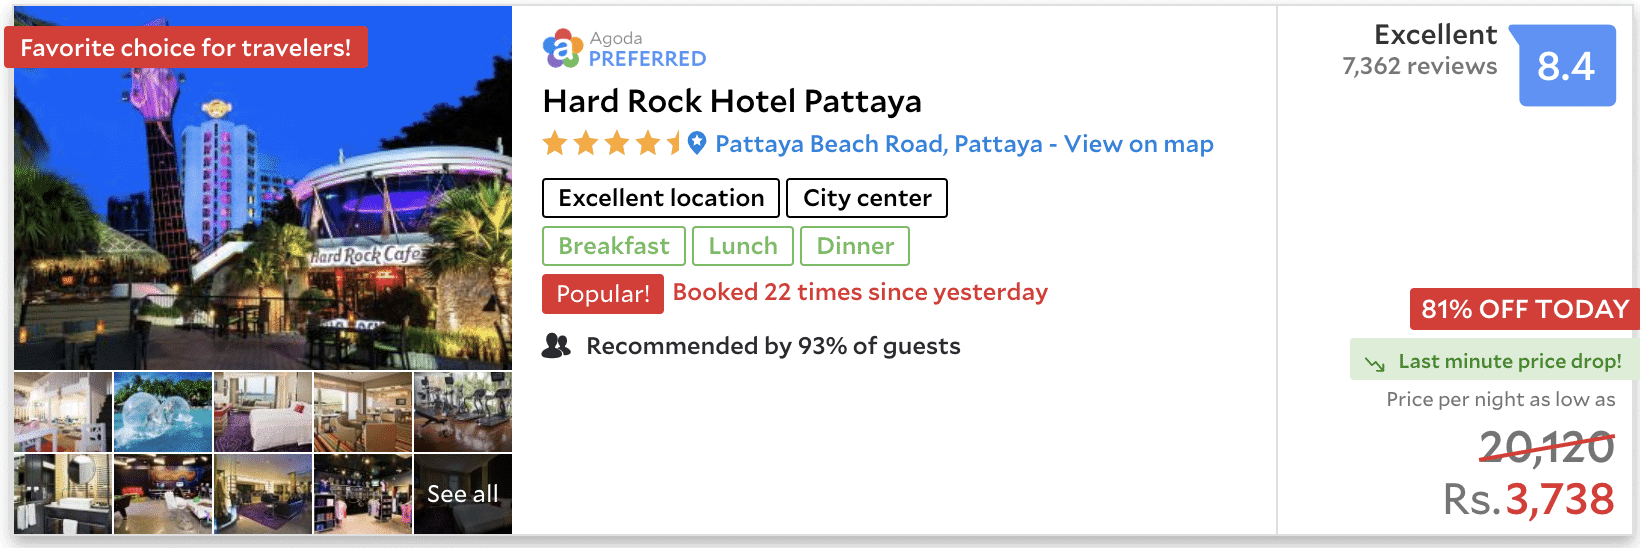 Pattaya hard rock hotel